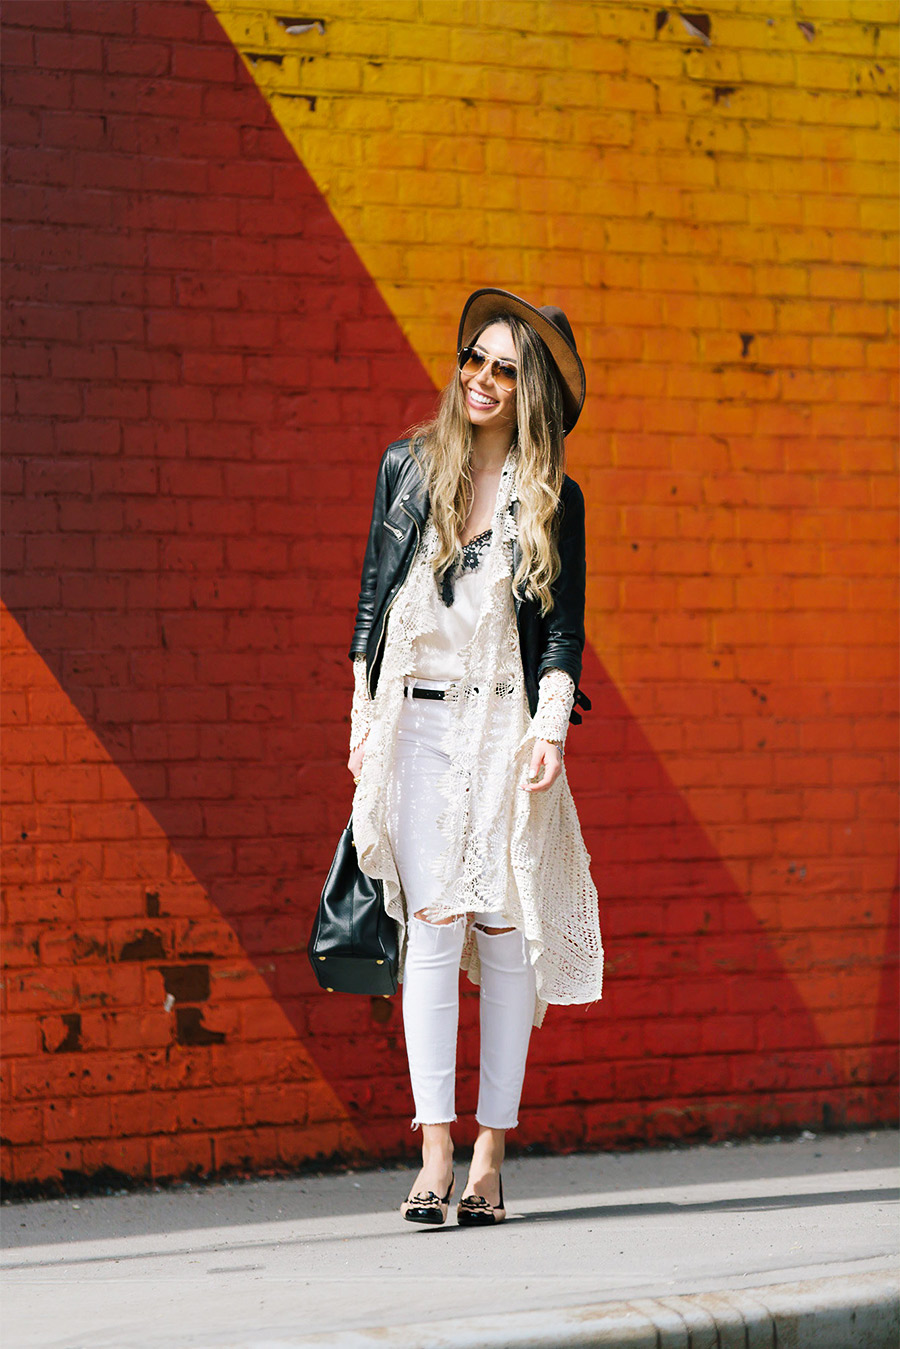 Boho chic in Dumbo